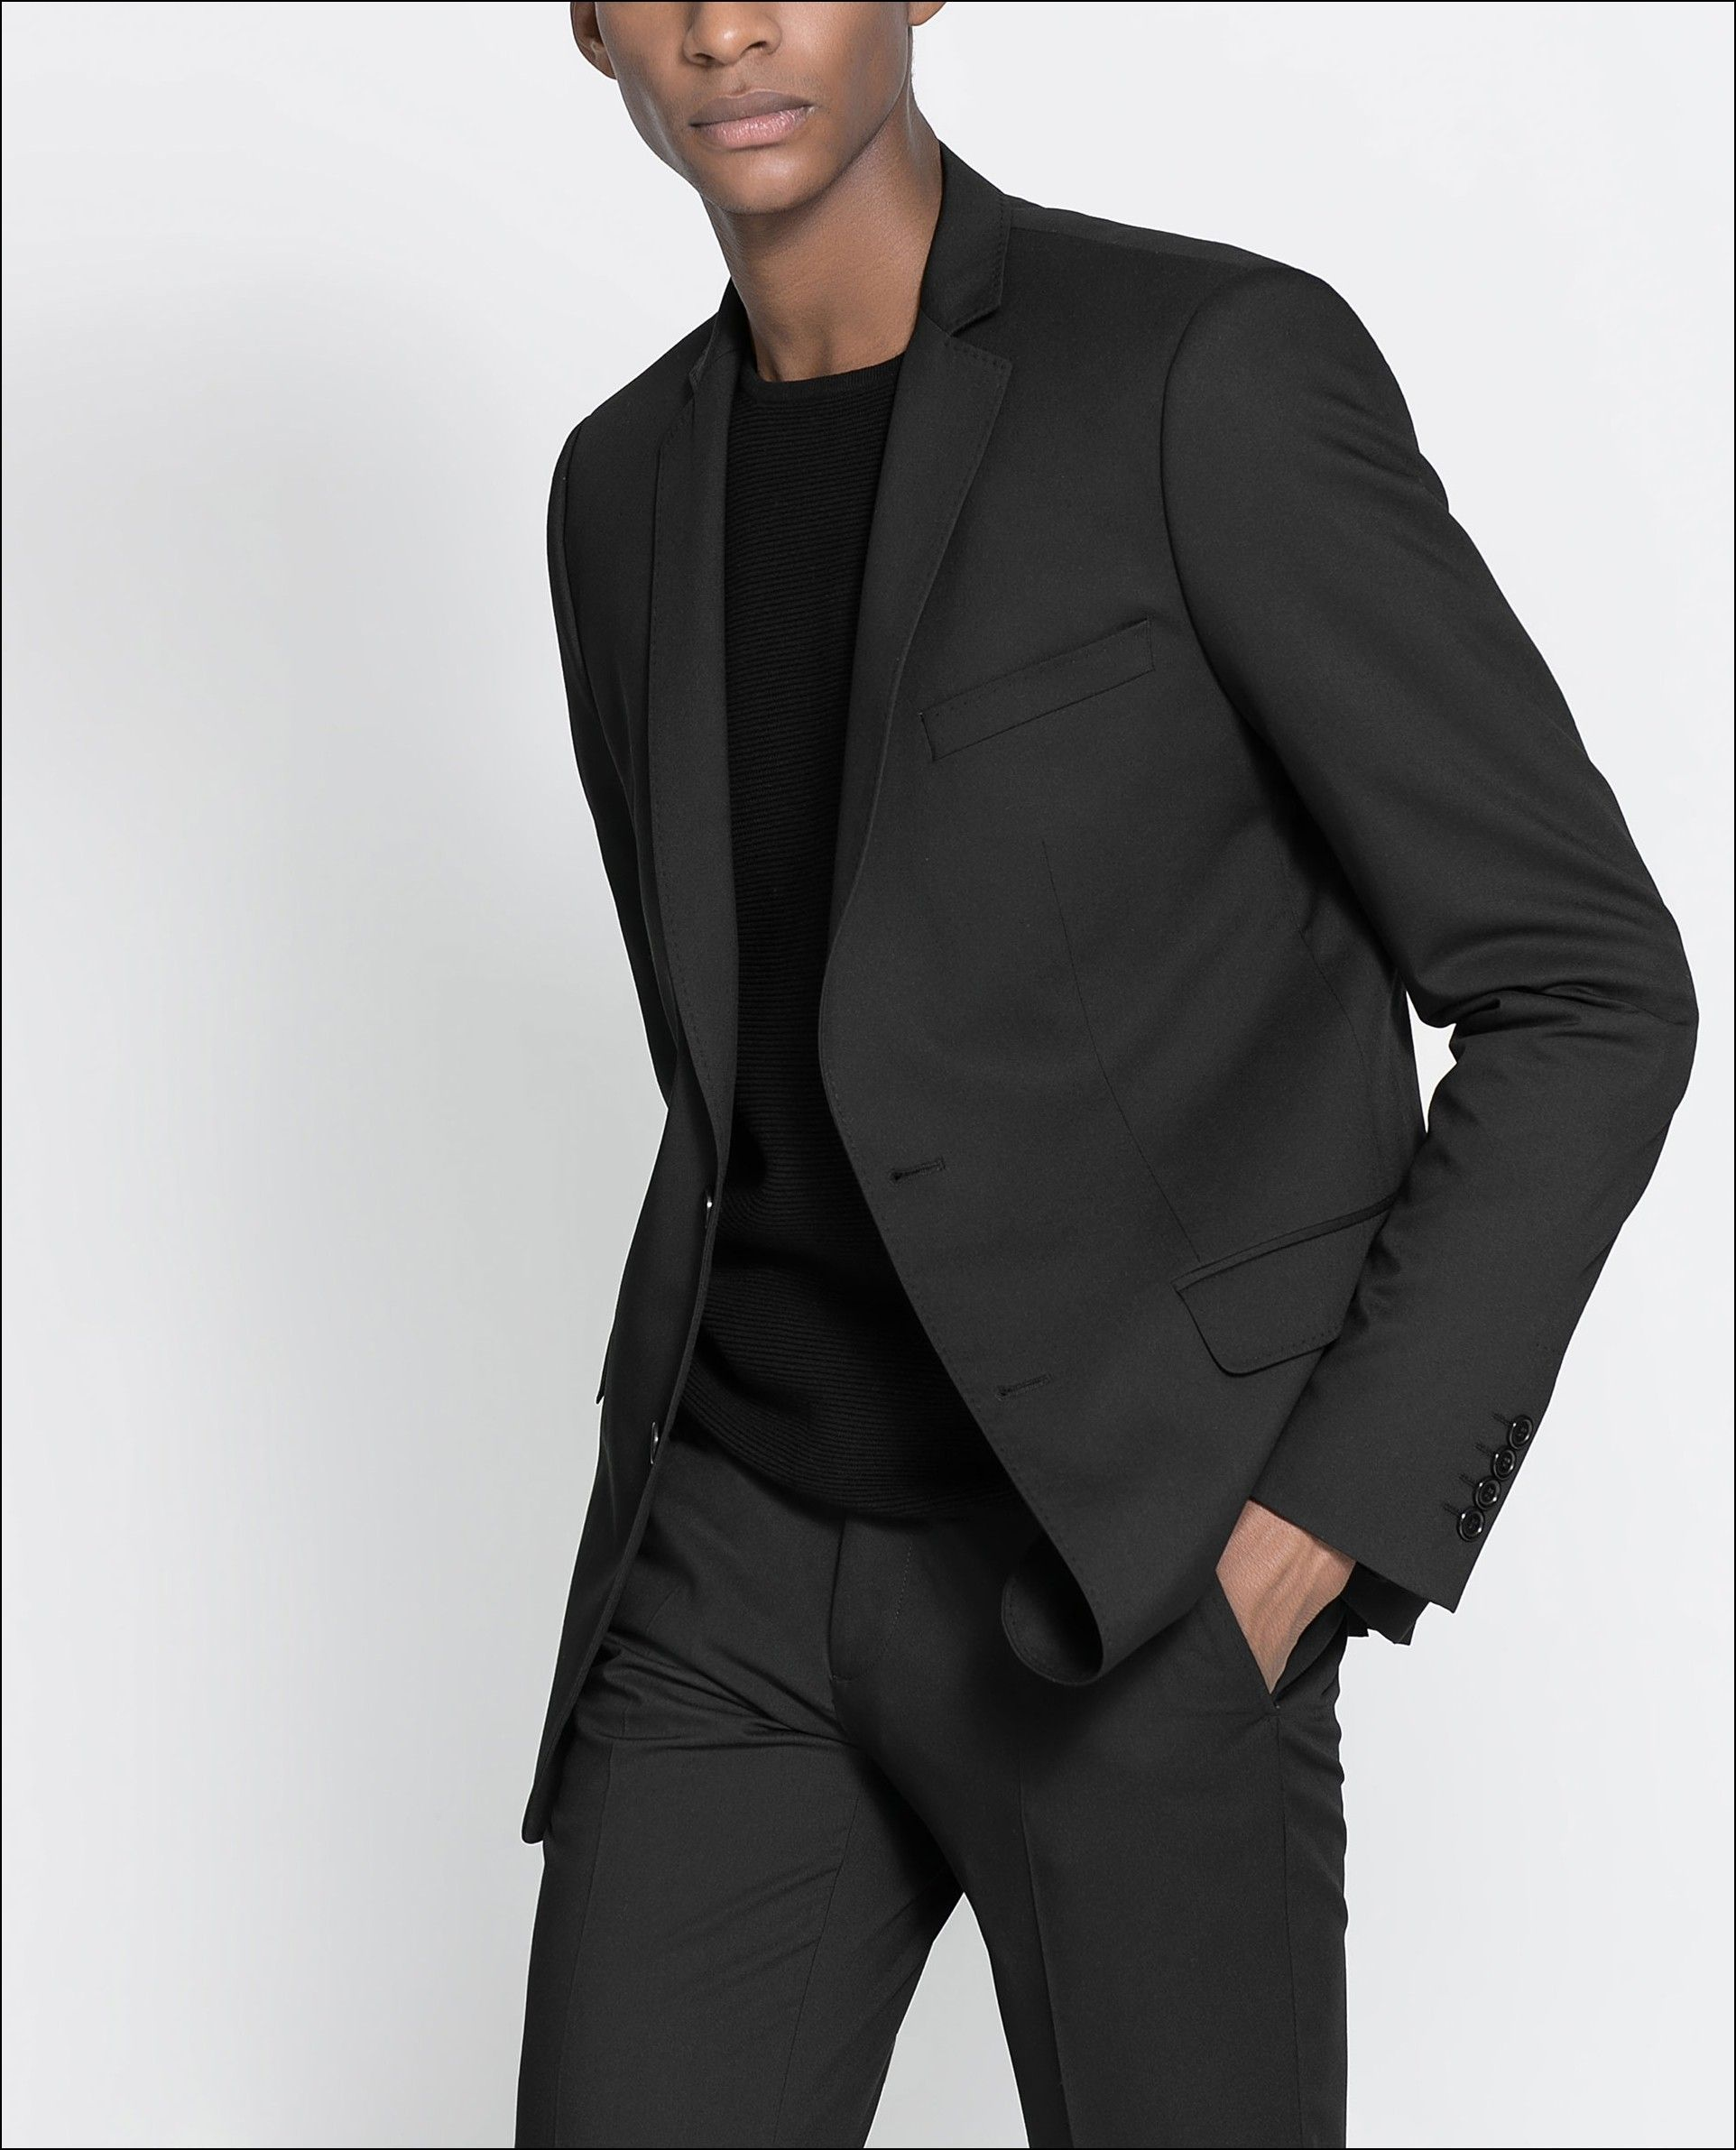 Black t shirt with suit - Grey Suit With Black T Shirt Google Search